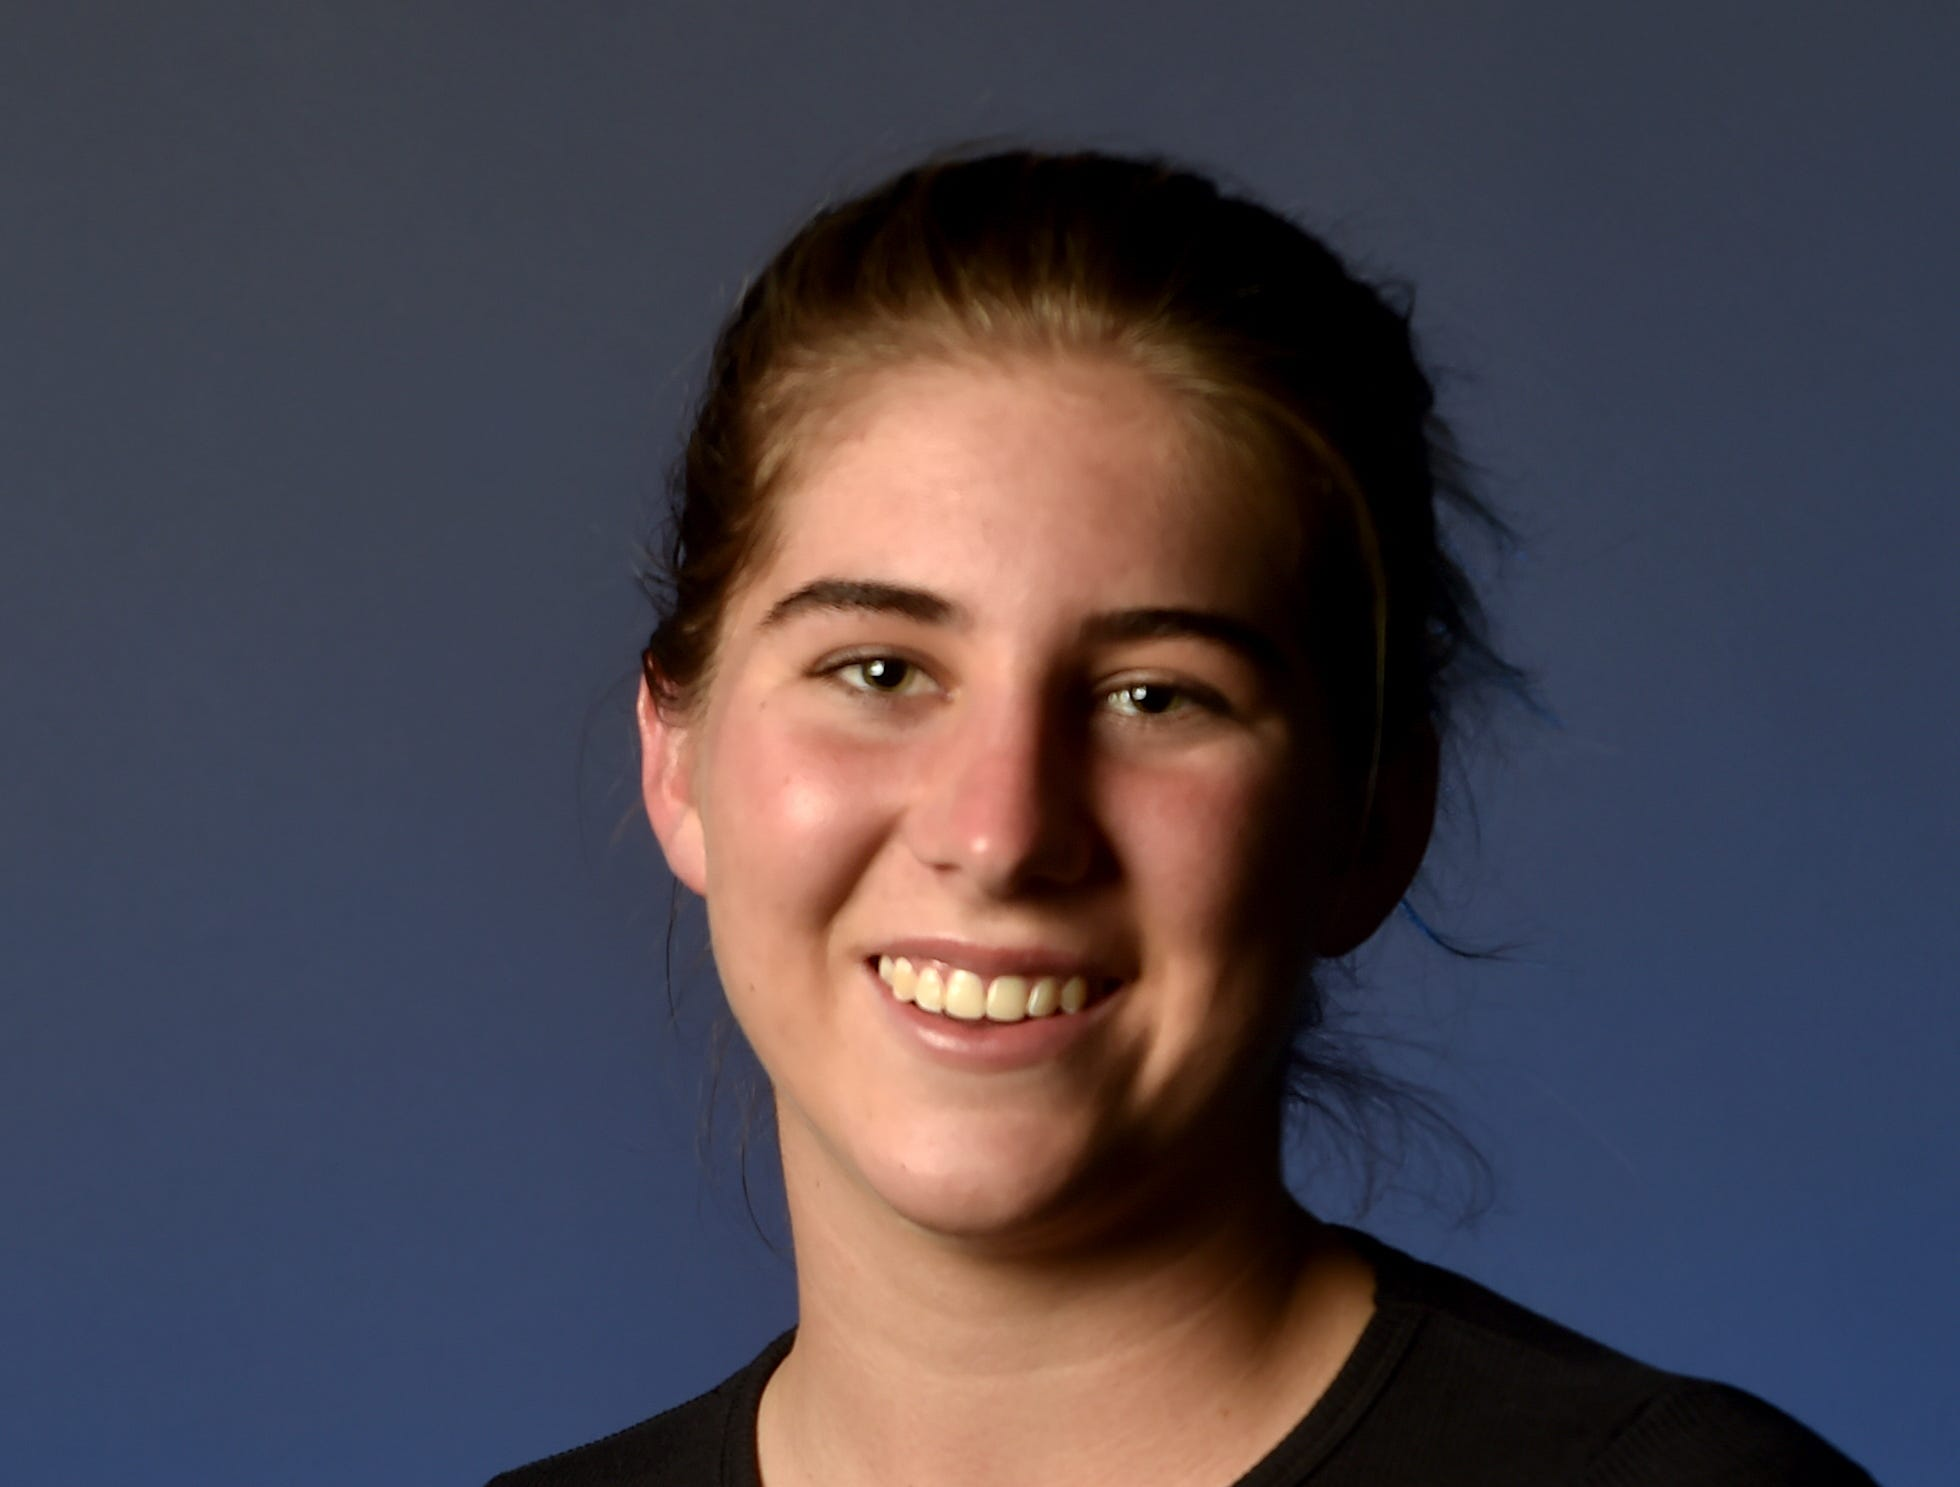 "CELESTE SCHREIFELS, Agoura: The 5-foot-8 striker fired the Chargers to an unlikely championship in their first year in the Coastal Canyon League. Her golden goal in overtime against Camarillo on Jan. 30 clinched the league title. The Coastal Canyon League co-Offensive Player of the Year had 10 goals and five assists. She enjoys surfing, hiking and playing the piano. She watches ""The Simpsons."" Steak is her favorite food. She roots for the Los Angeles Kings and Serena William is her favorite athlete."